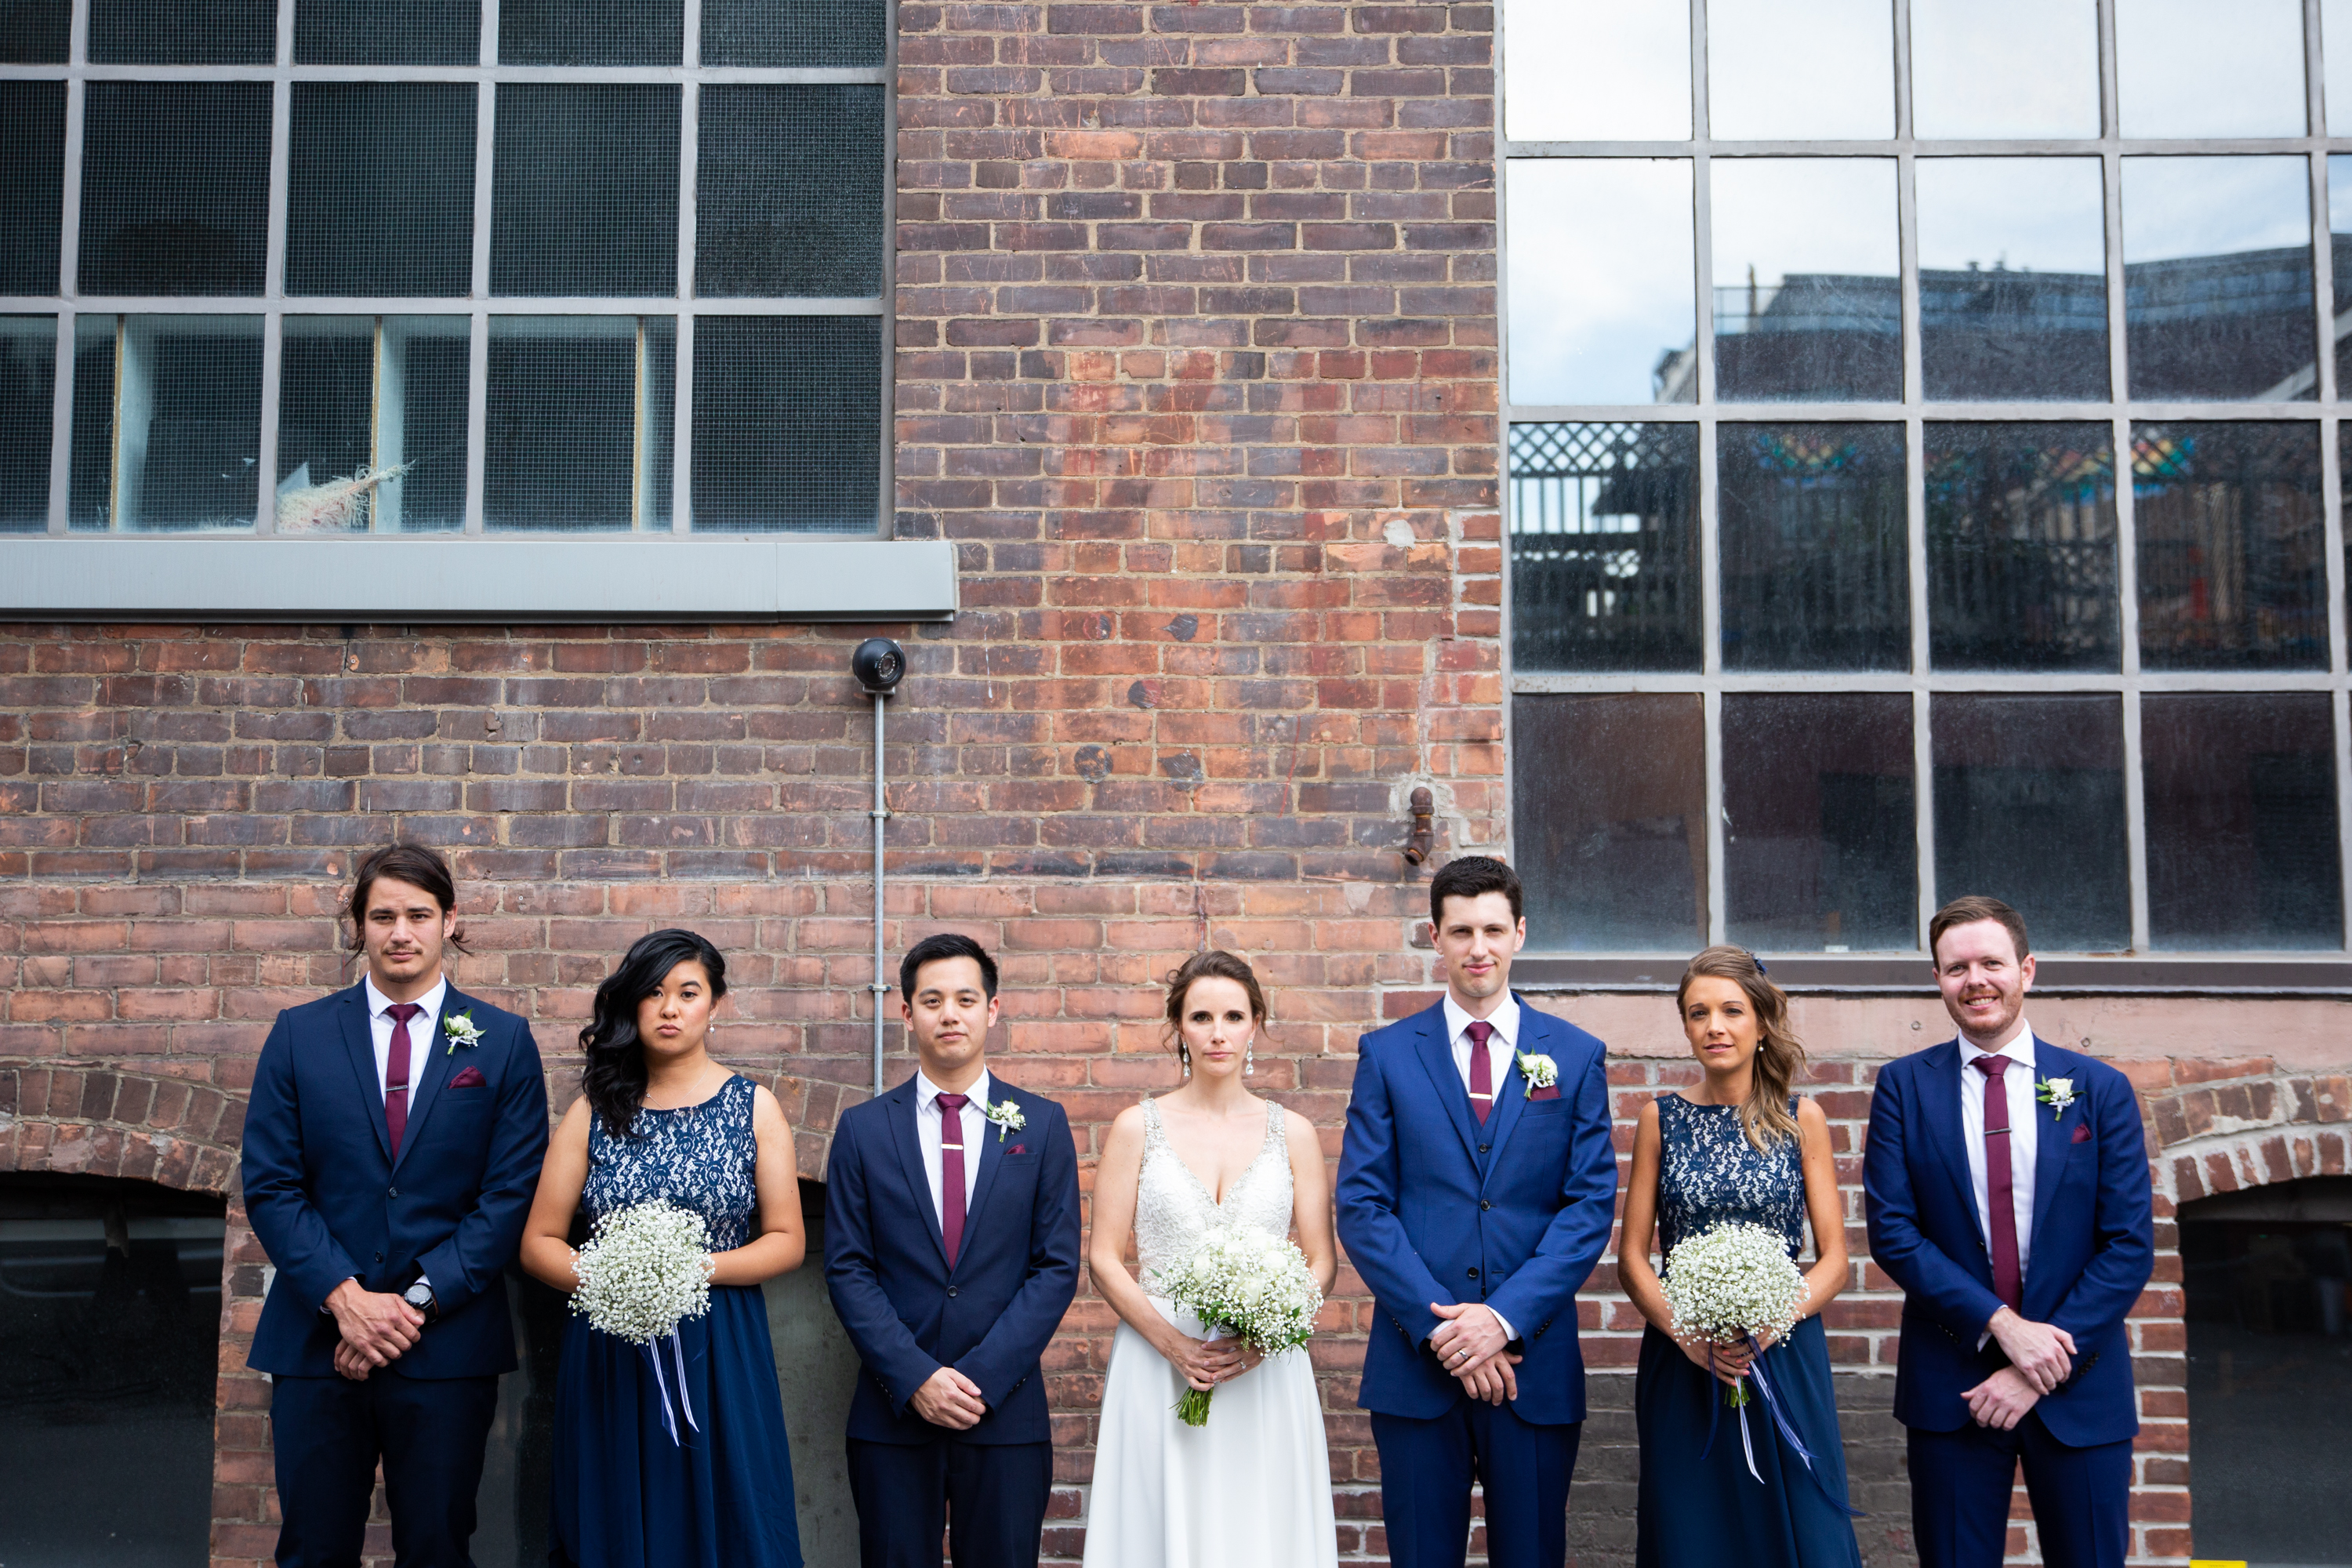 Behind The Scenes, Zsuzsi Pal Photography, Toronto Burlington Wedding Photographer Wedding Party